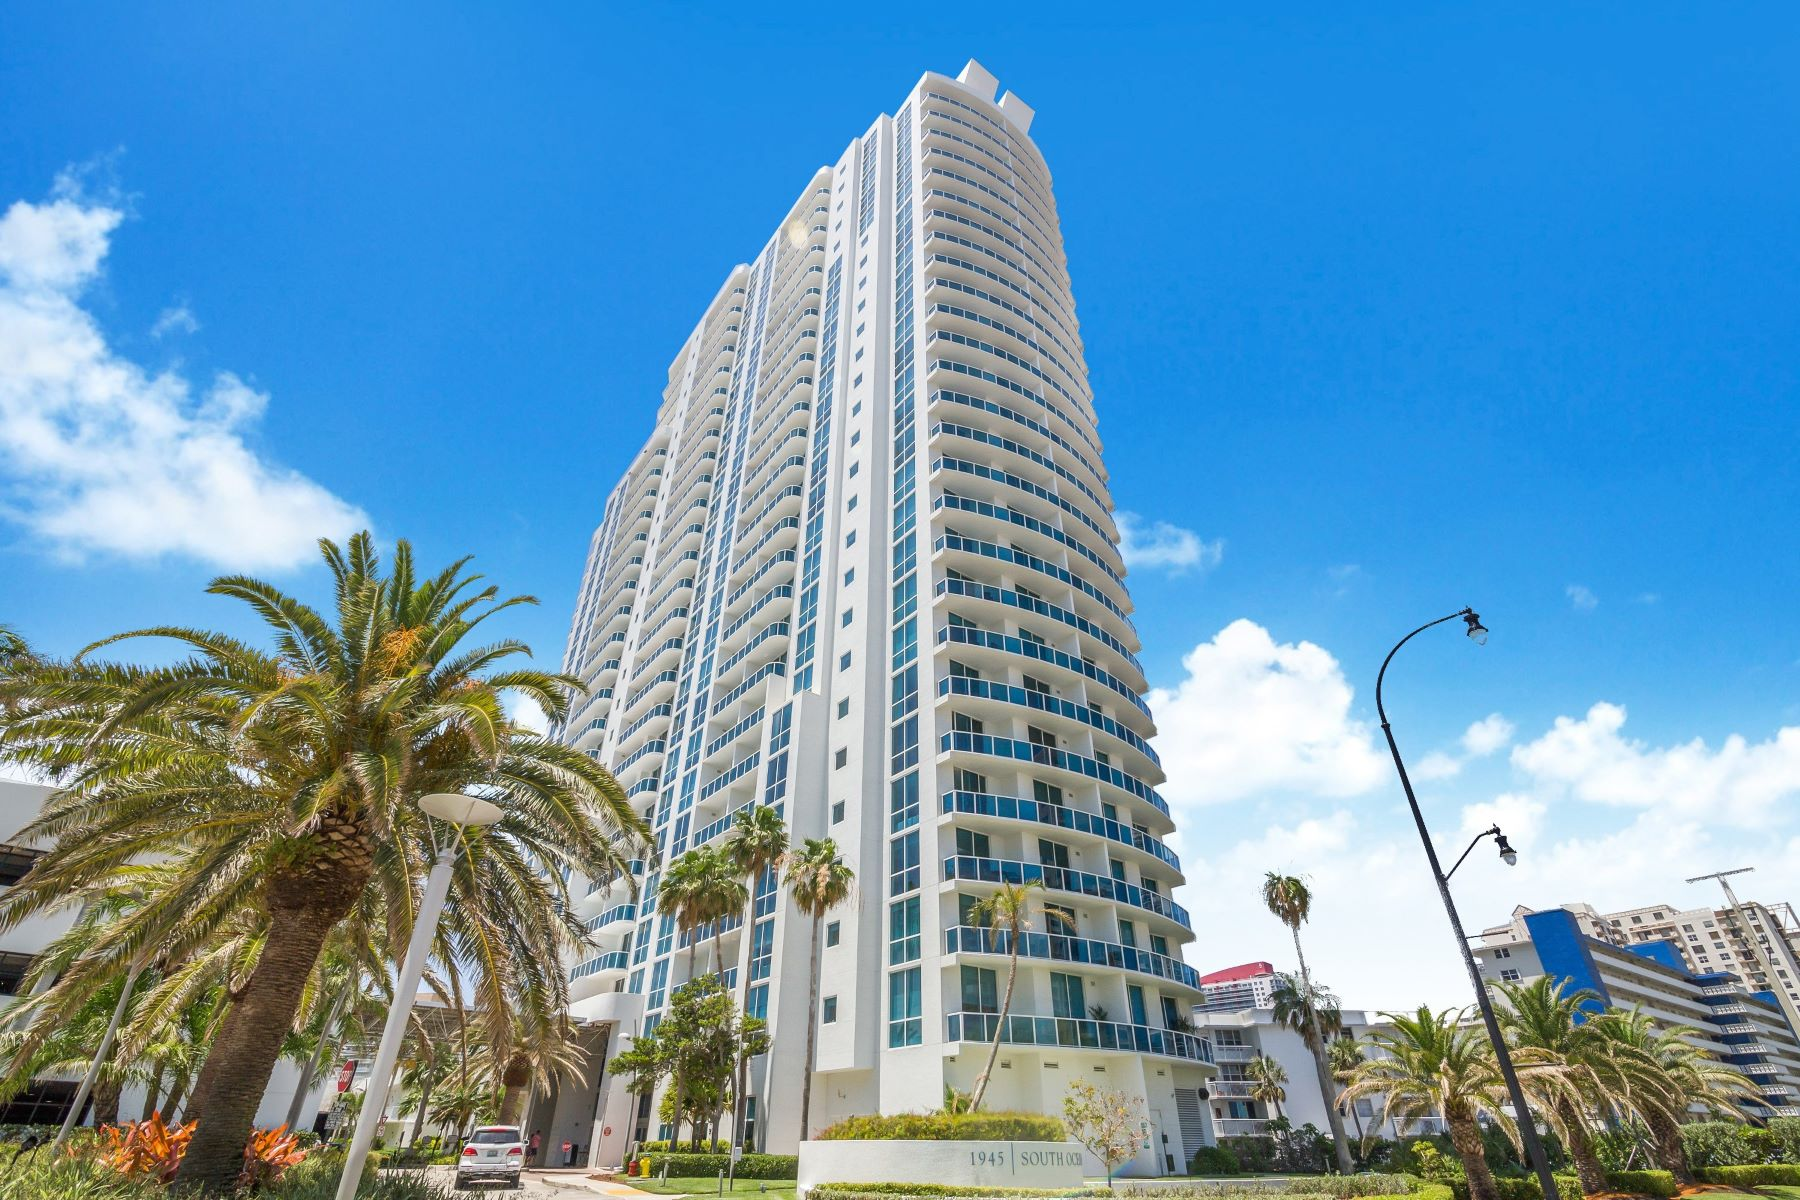 Condominiums for Sale at 1945 S Ocean Dr. TS 2802 1945 S Ocean Dr 2802 Hallandale, Florida 33009 United States